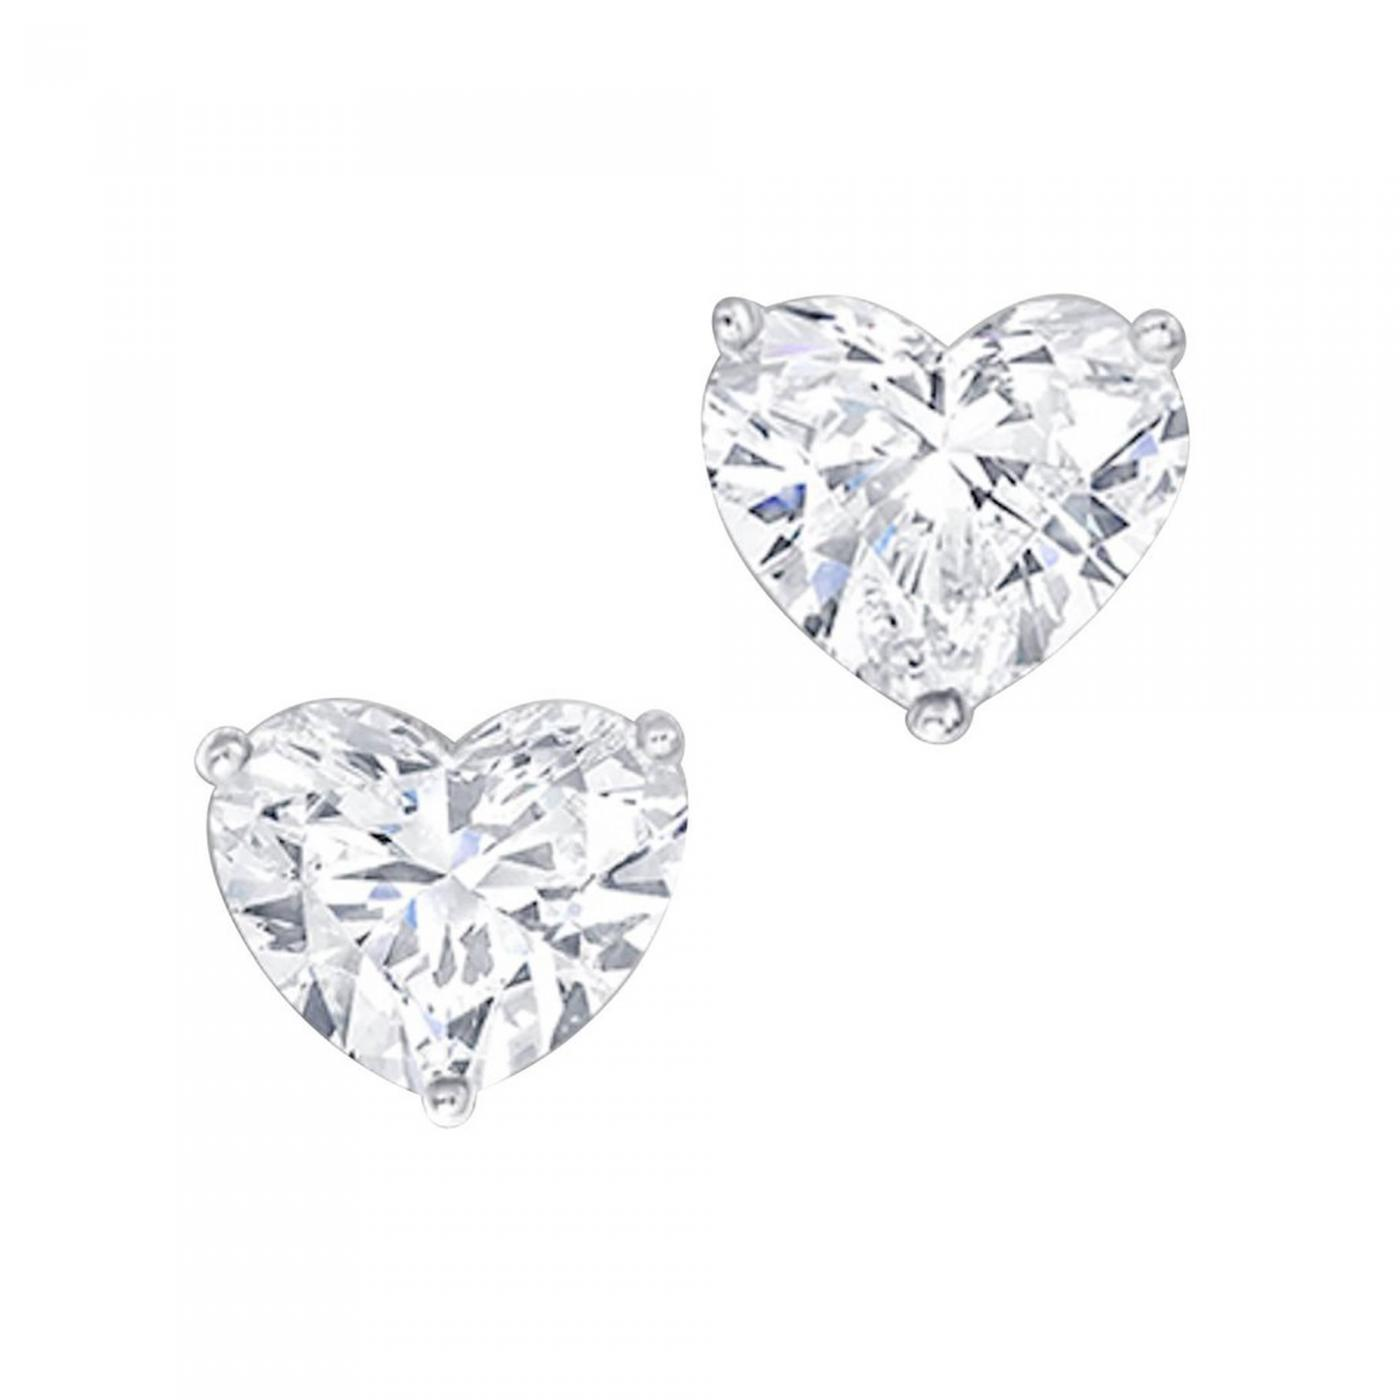 earrings h white gold i si diamond in shape heart rectangular